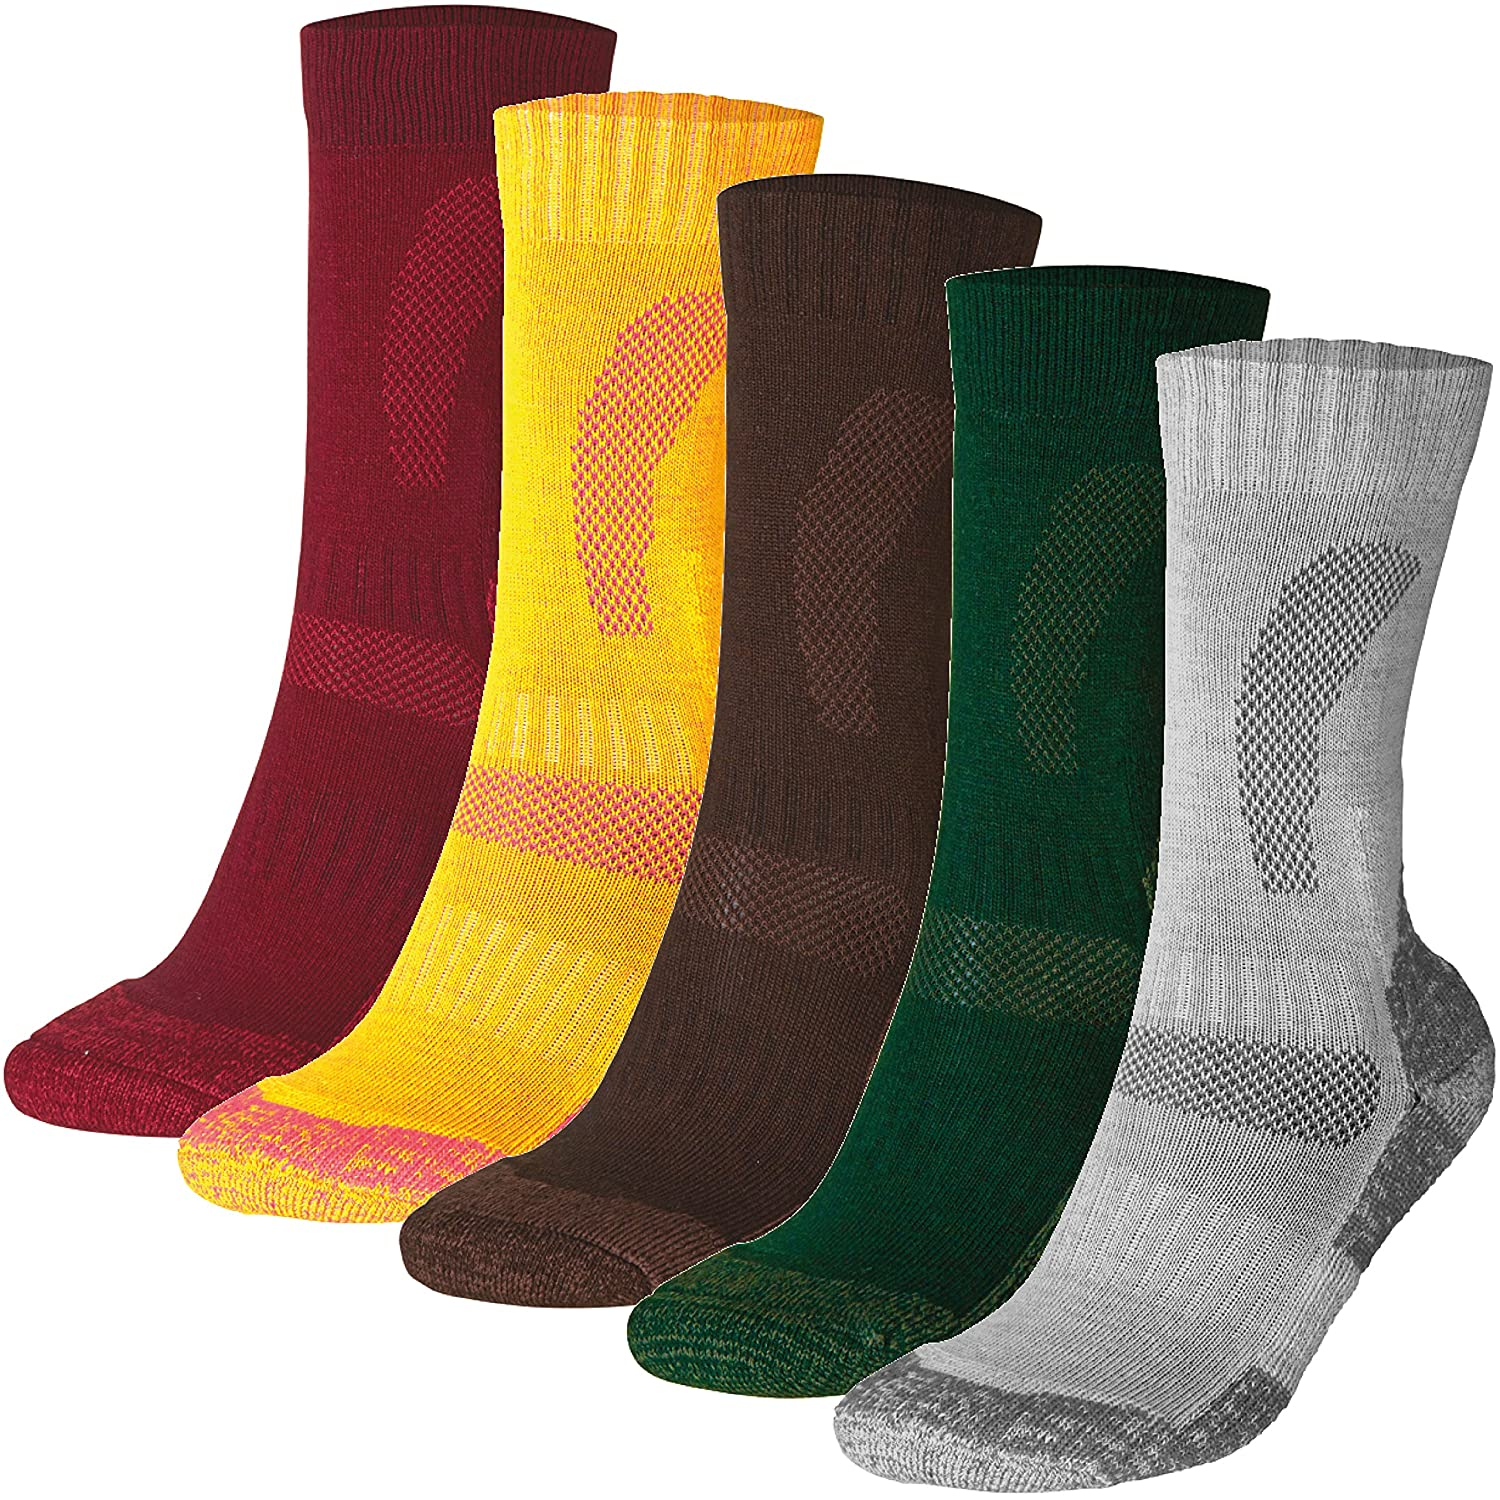 Danish Endurance Hiking Sock